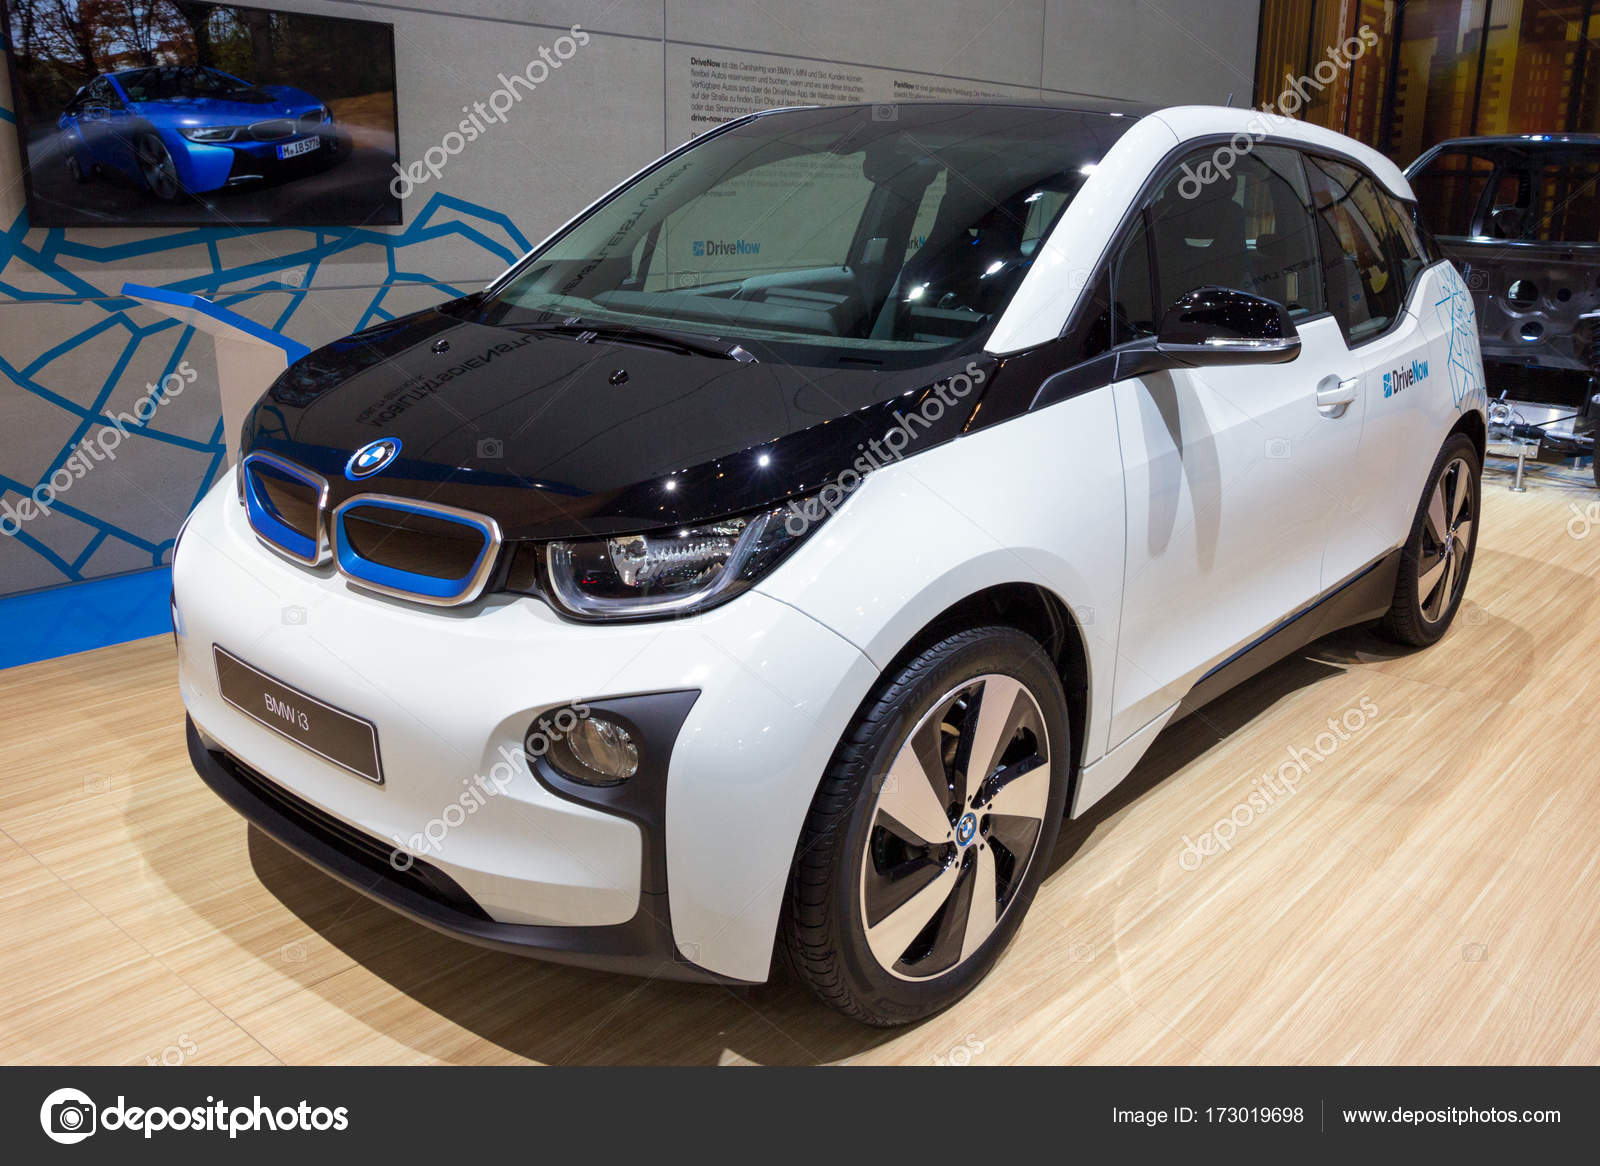 unveils s new design dynamics car architecture inhabitat electric green vision to tesla innovation tag bmw rival i model the dynamic